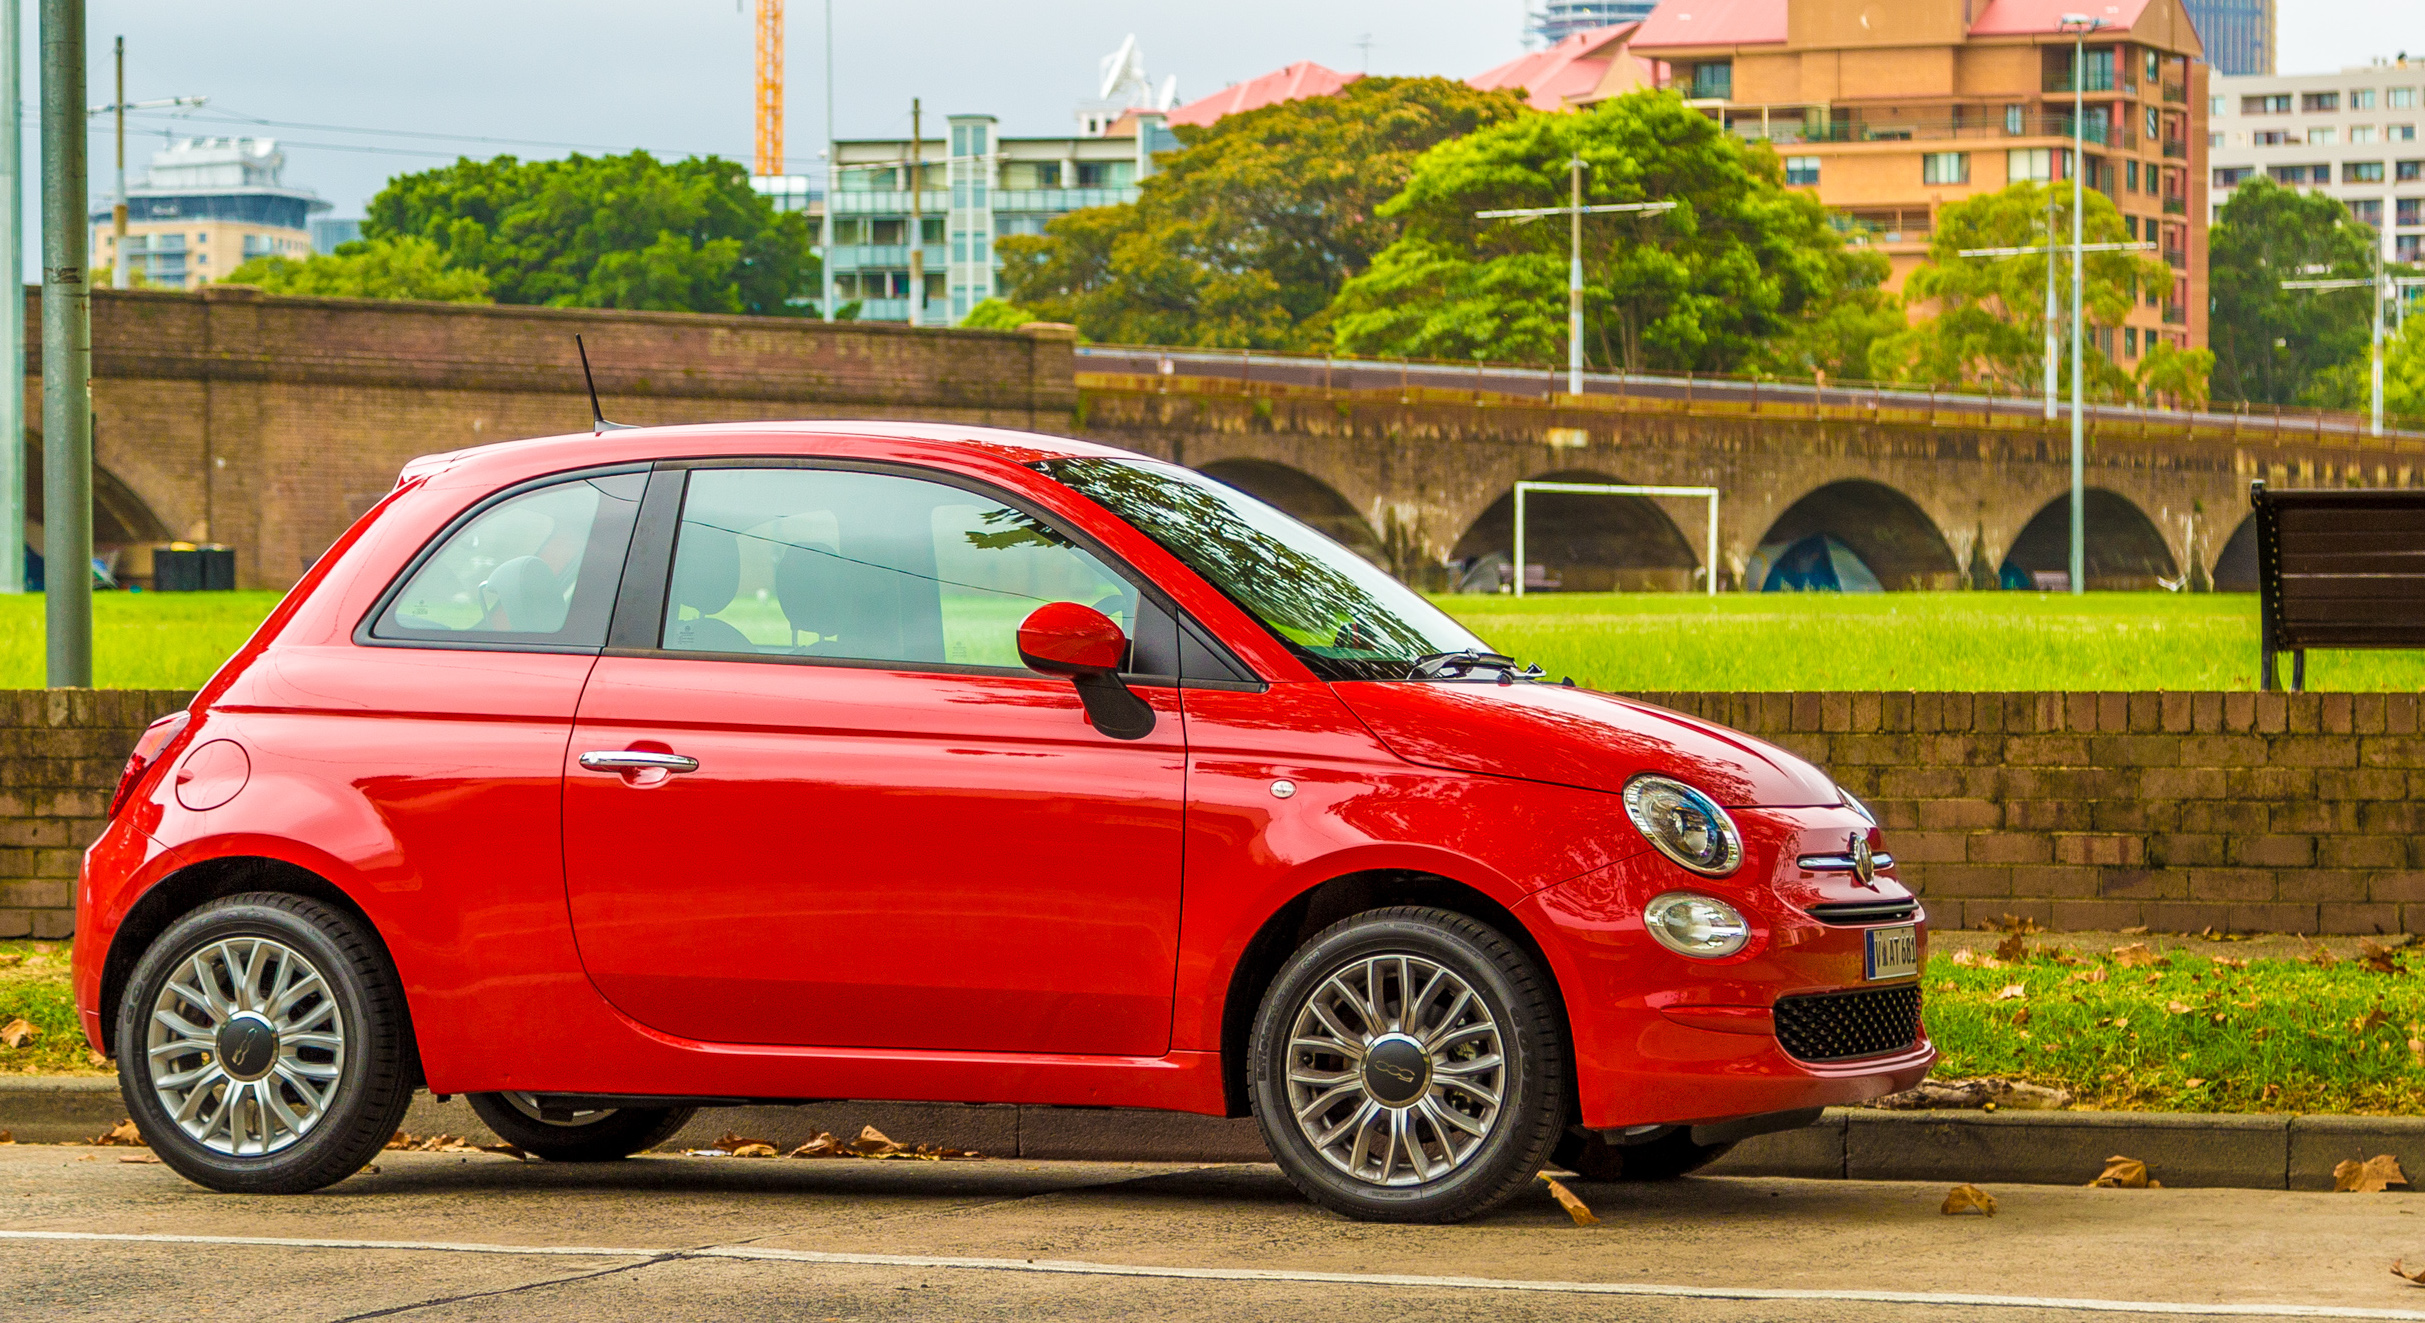 2016 fiat 500 pop review photos caradvice. Black Bedroom Furniture Sets. Home Design Ideas